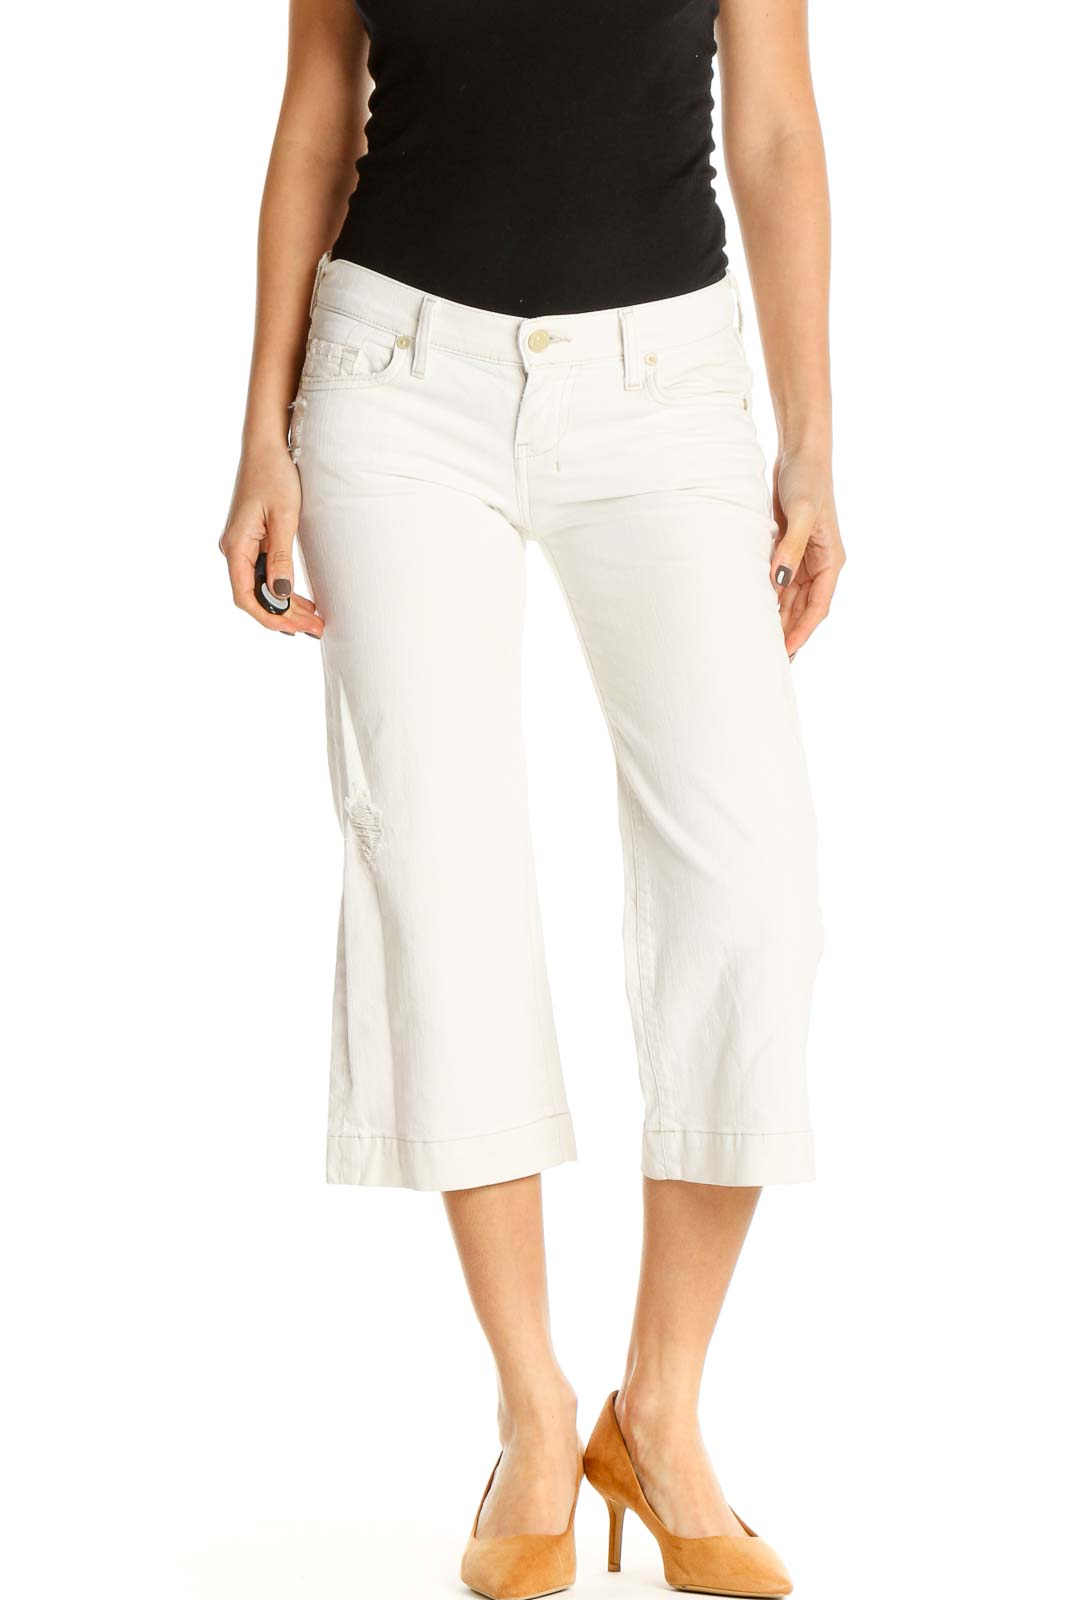 White Textured Casual Capri Pants Front